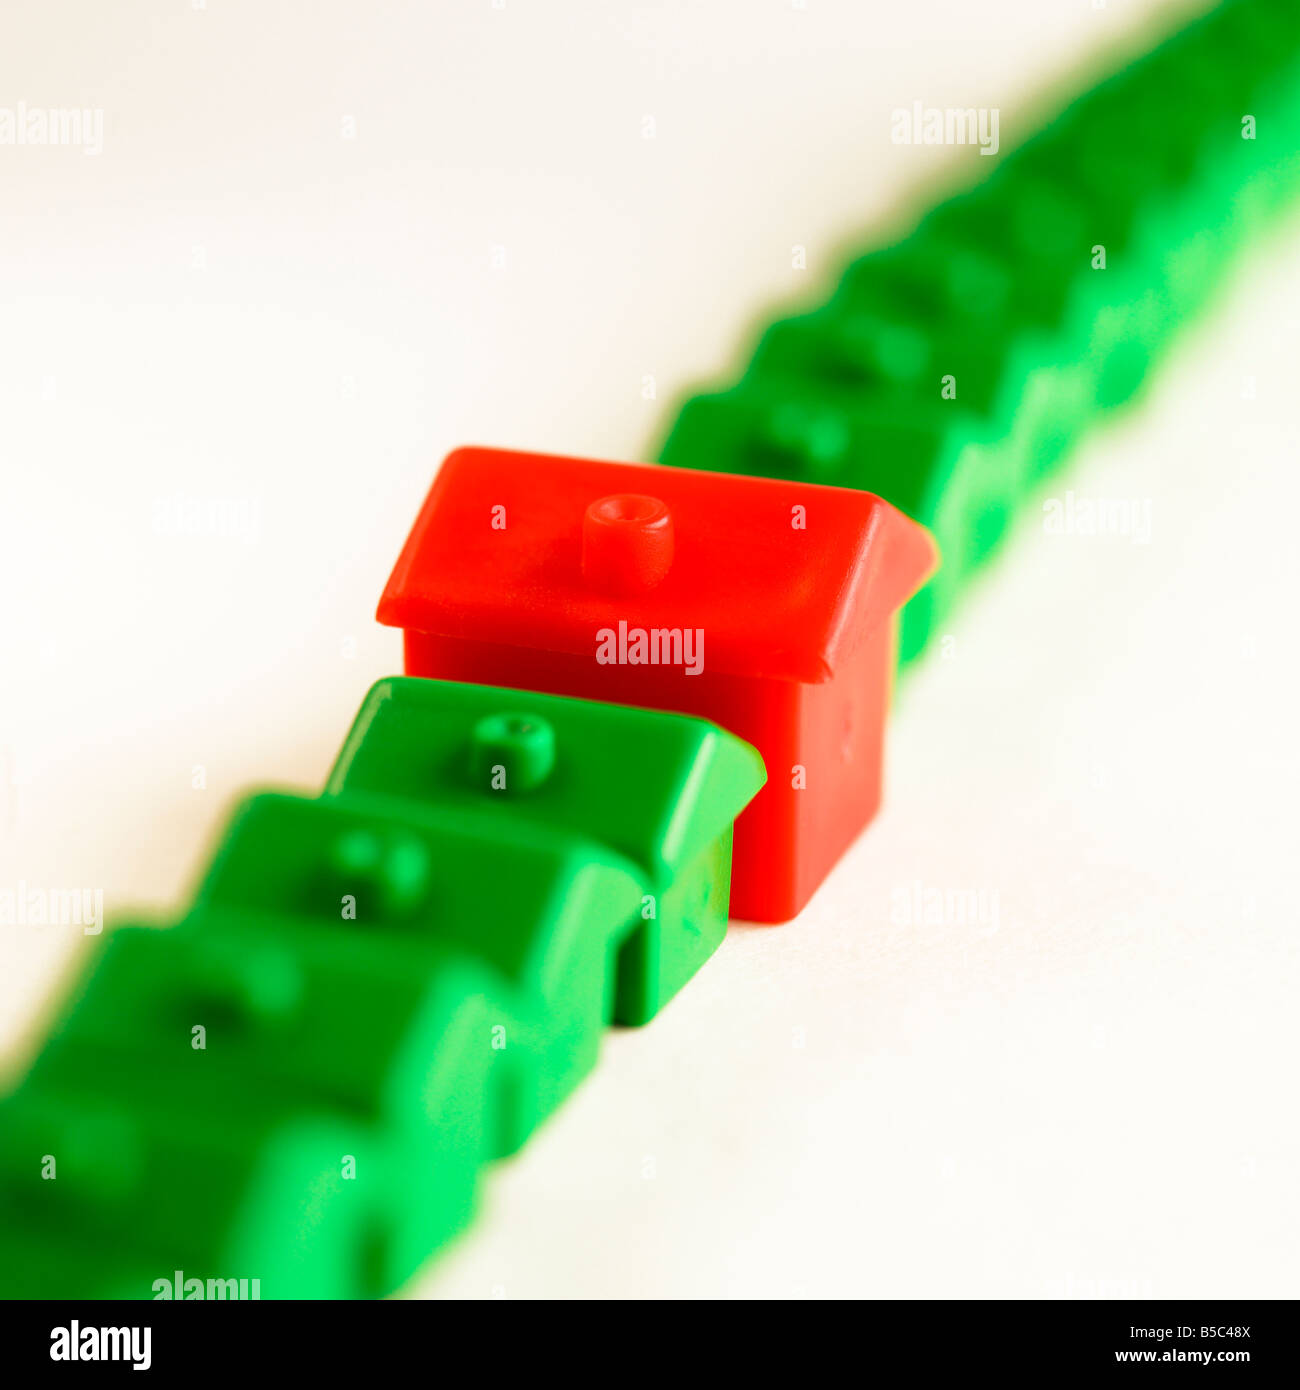 Monopoly house in a row - Stock Image